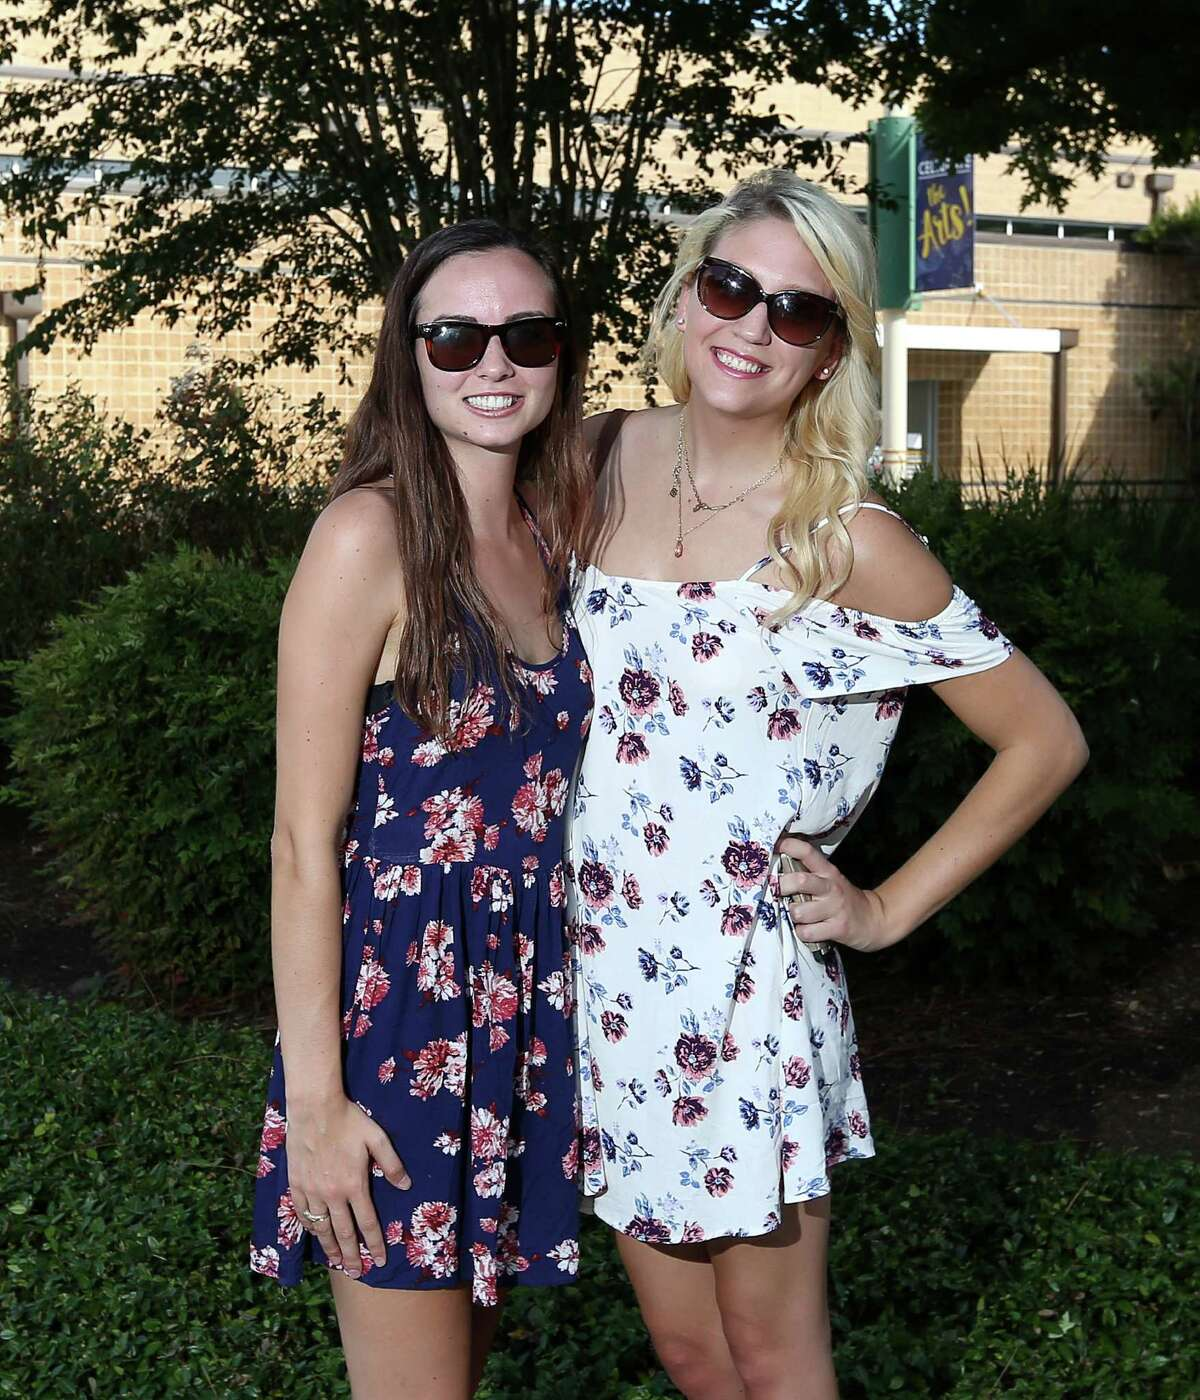 People pose for a photo before the Dixie Chicks concert at the Cynthia Woods Mitchell Pavilion, Saturday, Aug. 6, 2016, in The Woodlands.